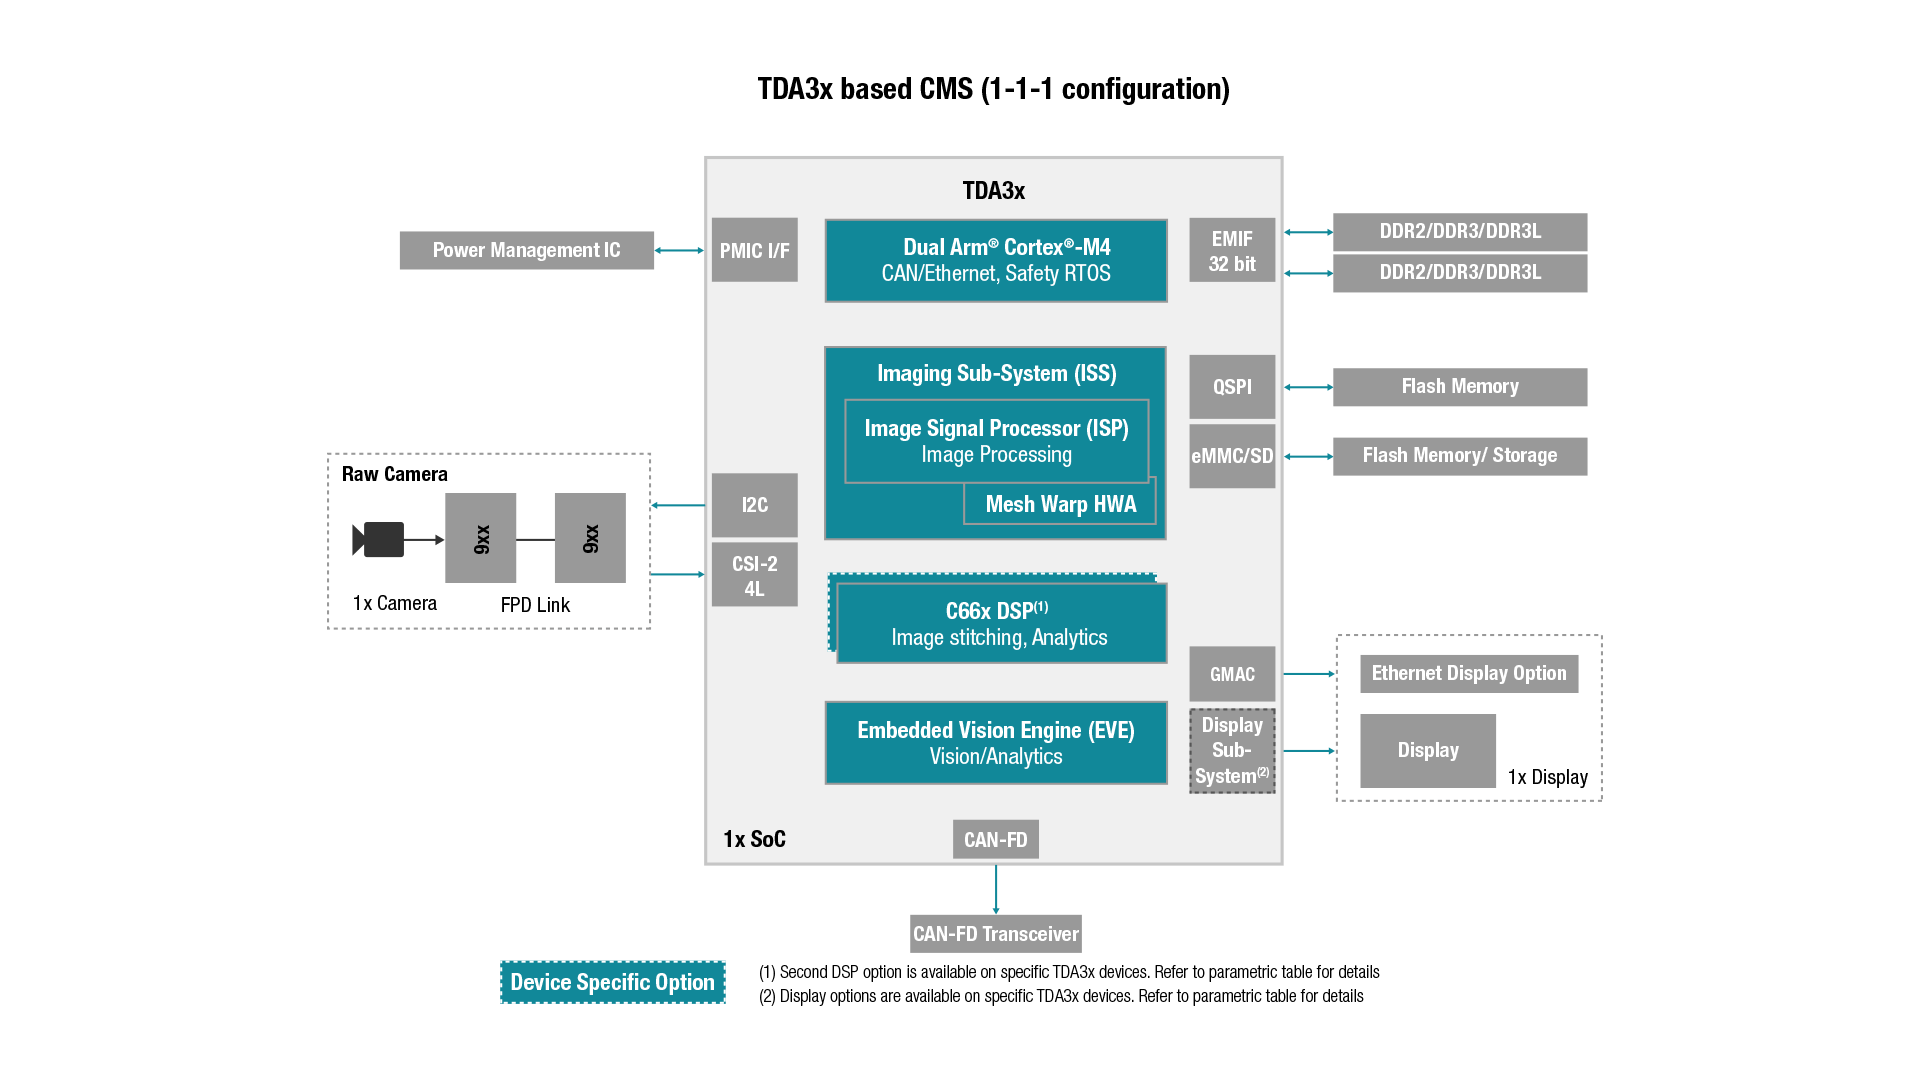 Tdax Adas Mirror Replacement System Automotive Processors H 264 Block Diagram Tda3x Based Cms